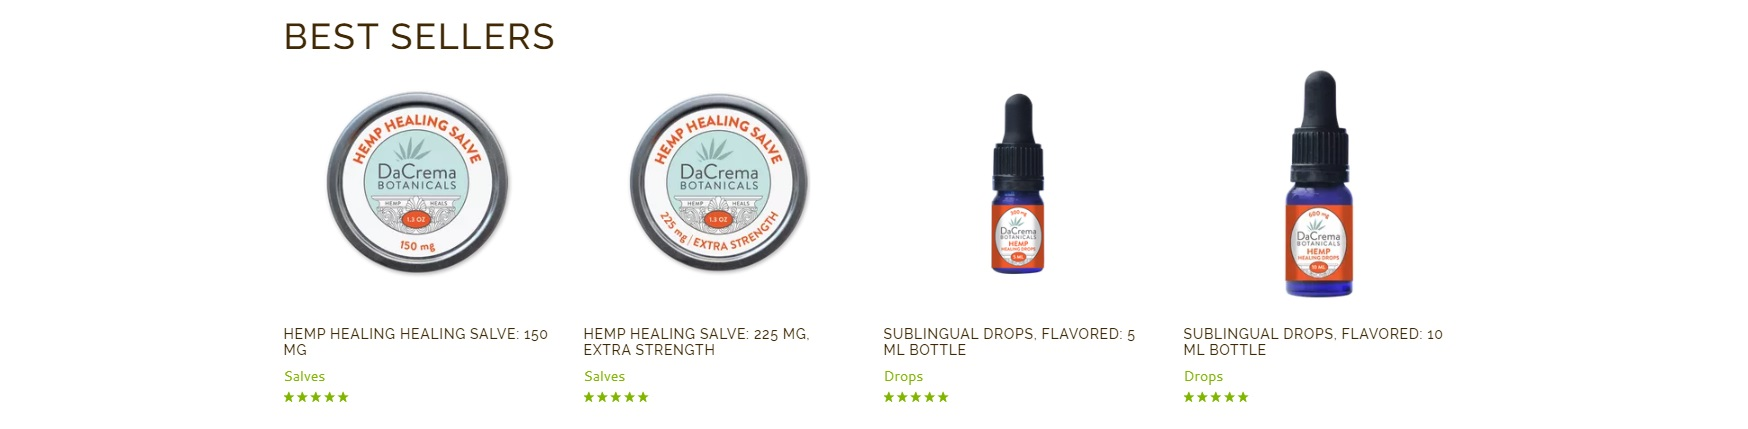 Dacrema Botanicals Website Photo